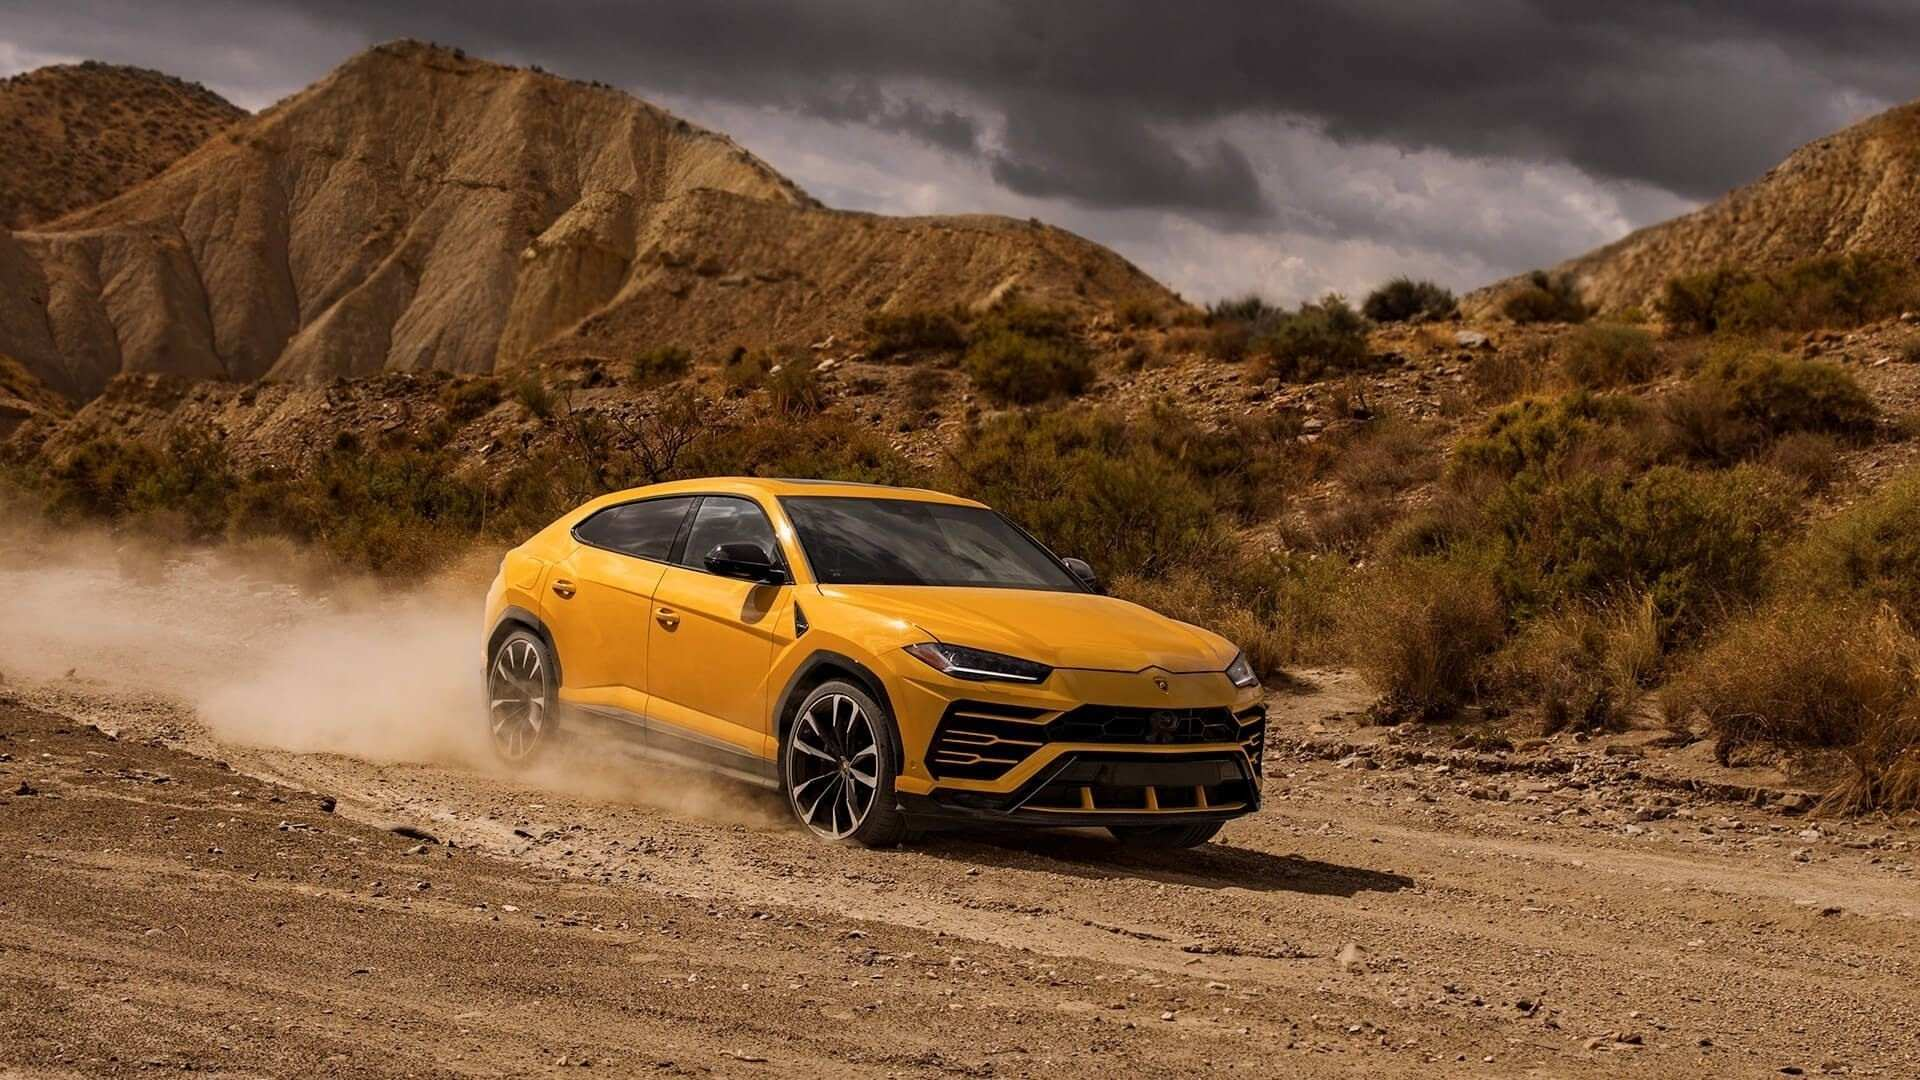 79 New 2019 Renault Megane SUV First Drive